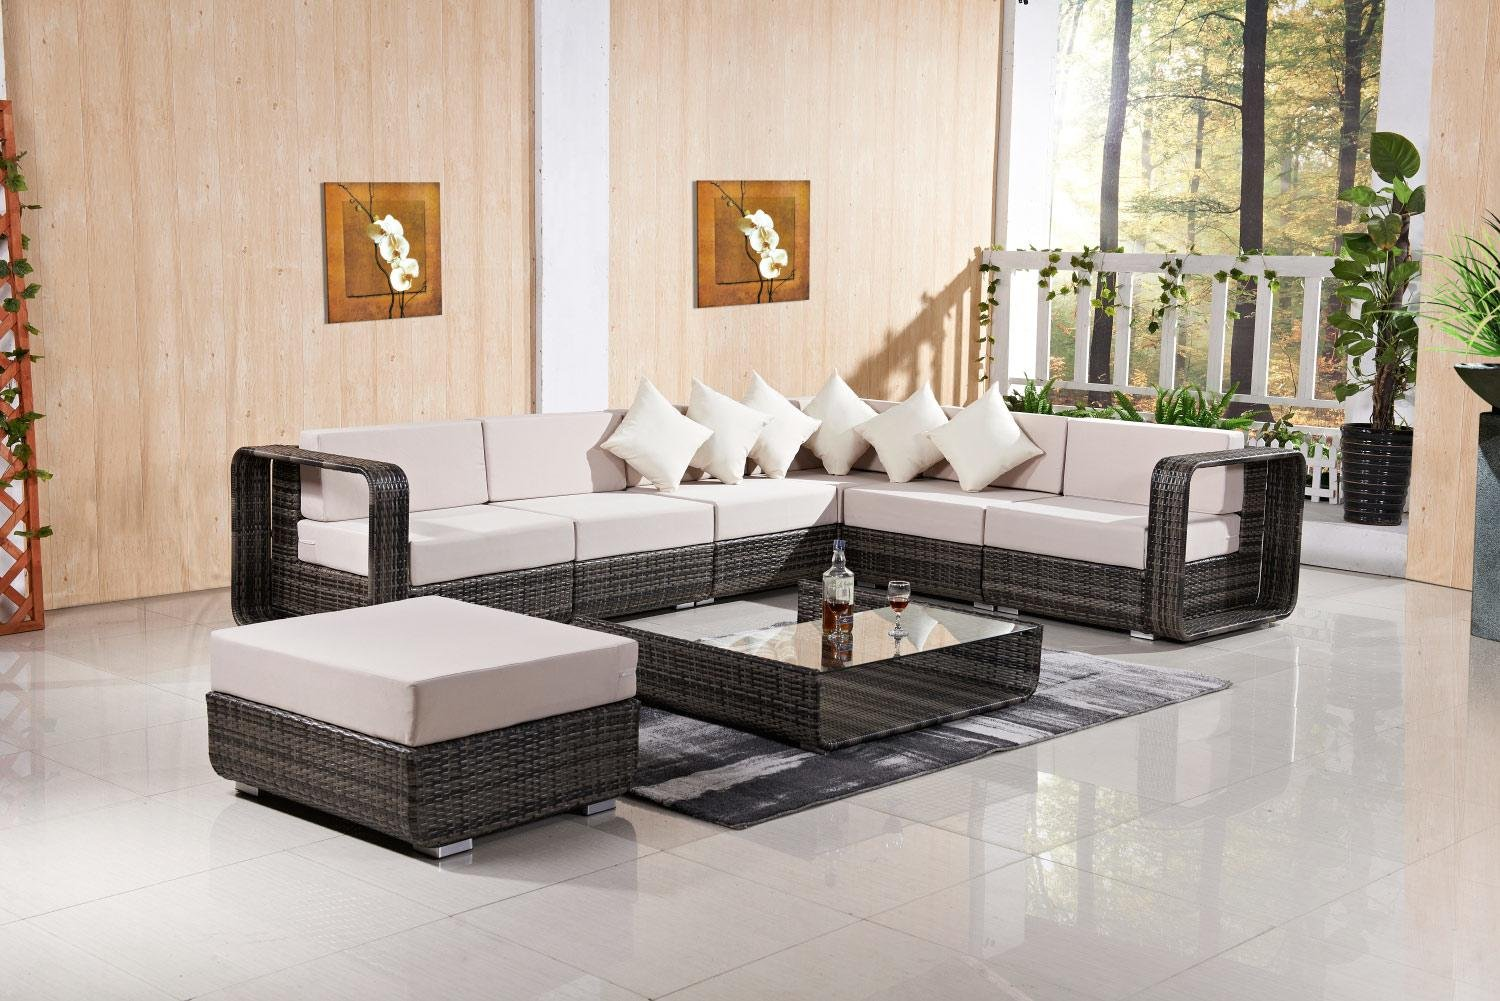 Milo Italia FQ-802-G-LG Patio/Hotel Set with Sectional Sofa, Ottoman and Coffee Table Grey in Brown and Light Grey